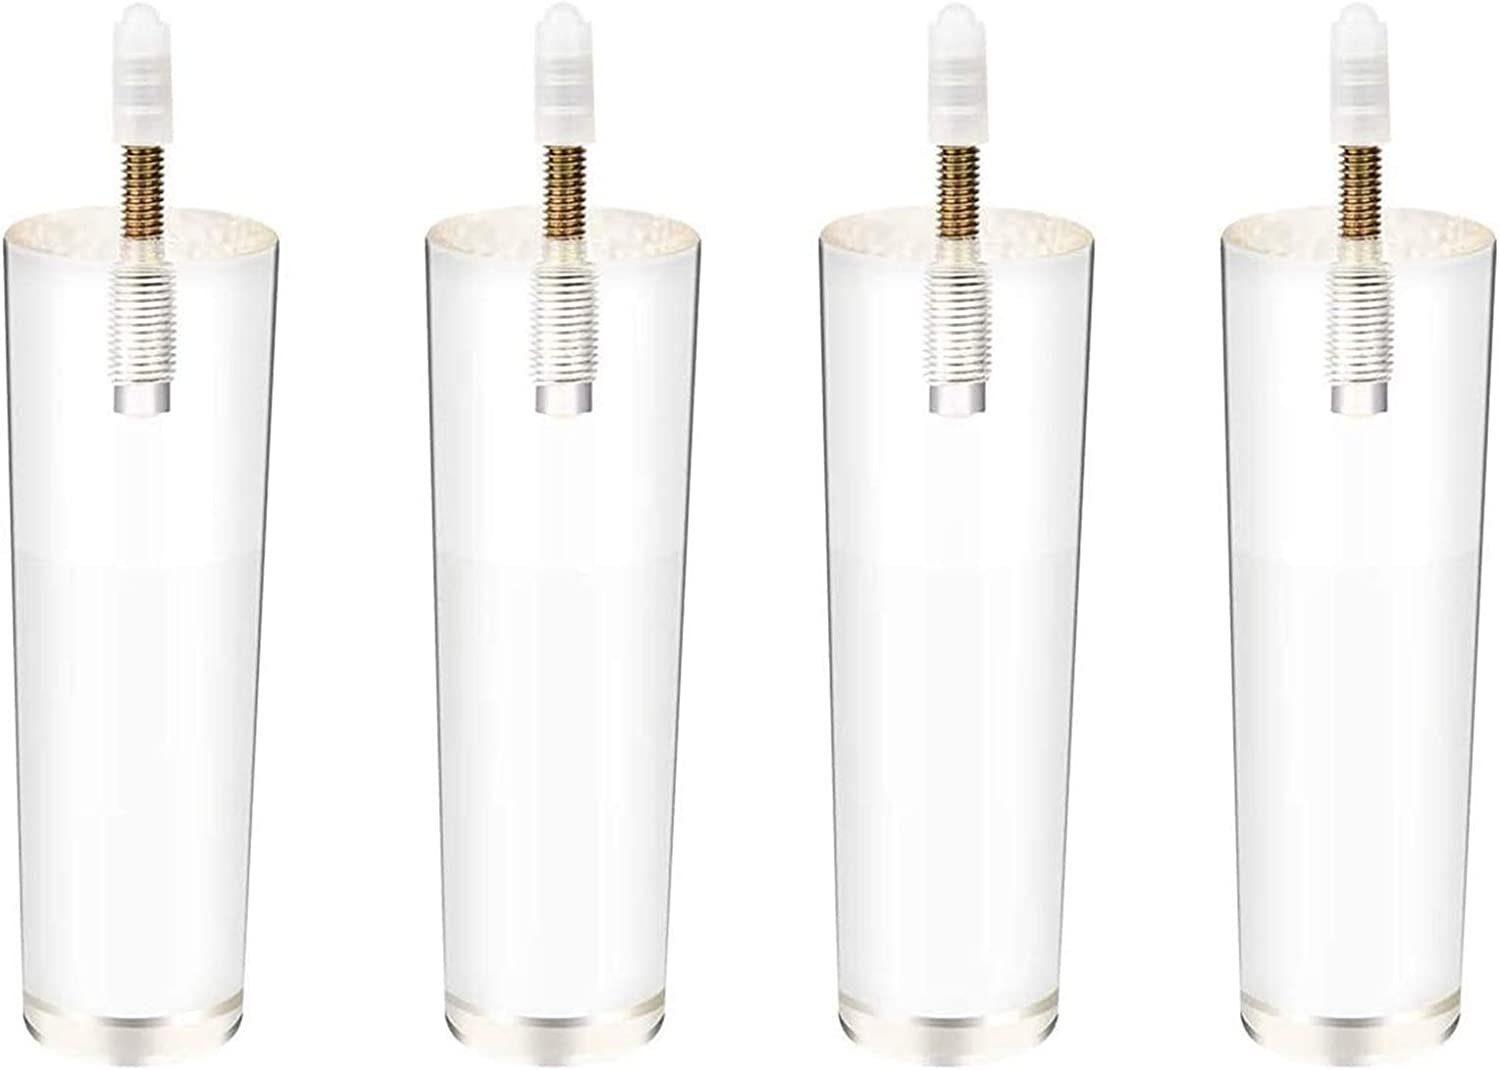 4 Inch/10cm Acrylic Furniture Legs,4PCS Tapered Clear Glass DIY M8 Replacement Furniture Feet With Pre-Drilled 5/16 Inch Bolt & Mounting Plate & Screws For Bookcase Table Cabinet ( Size : 5